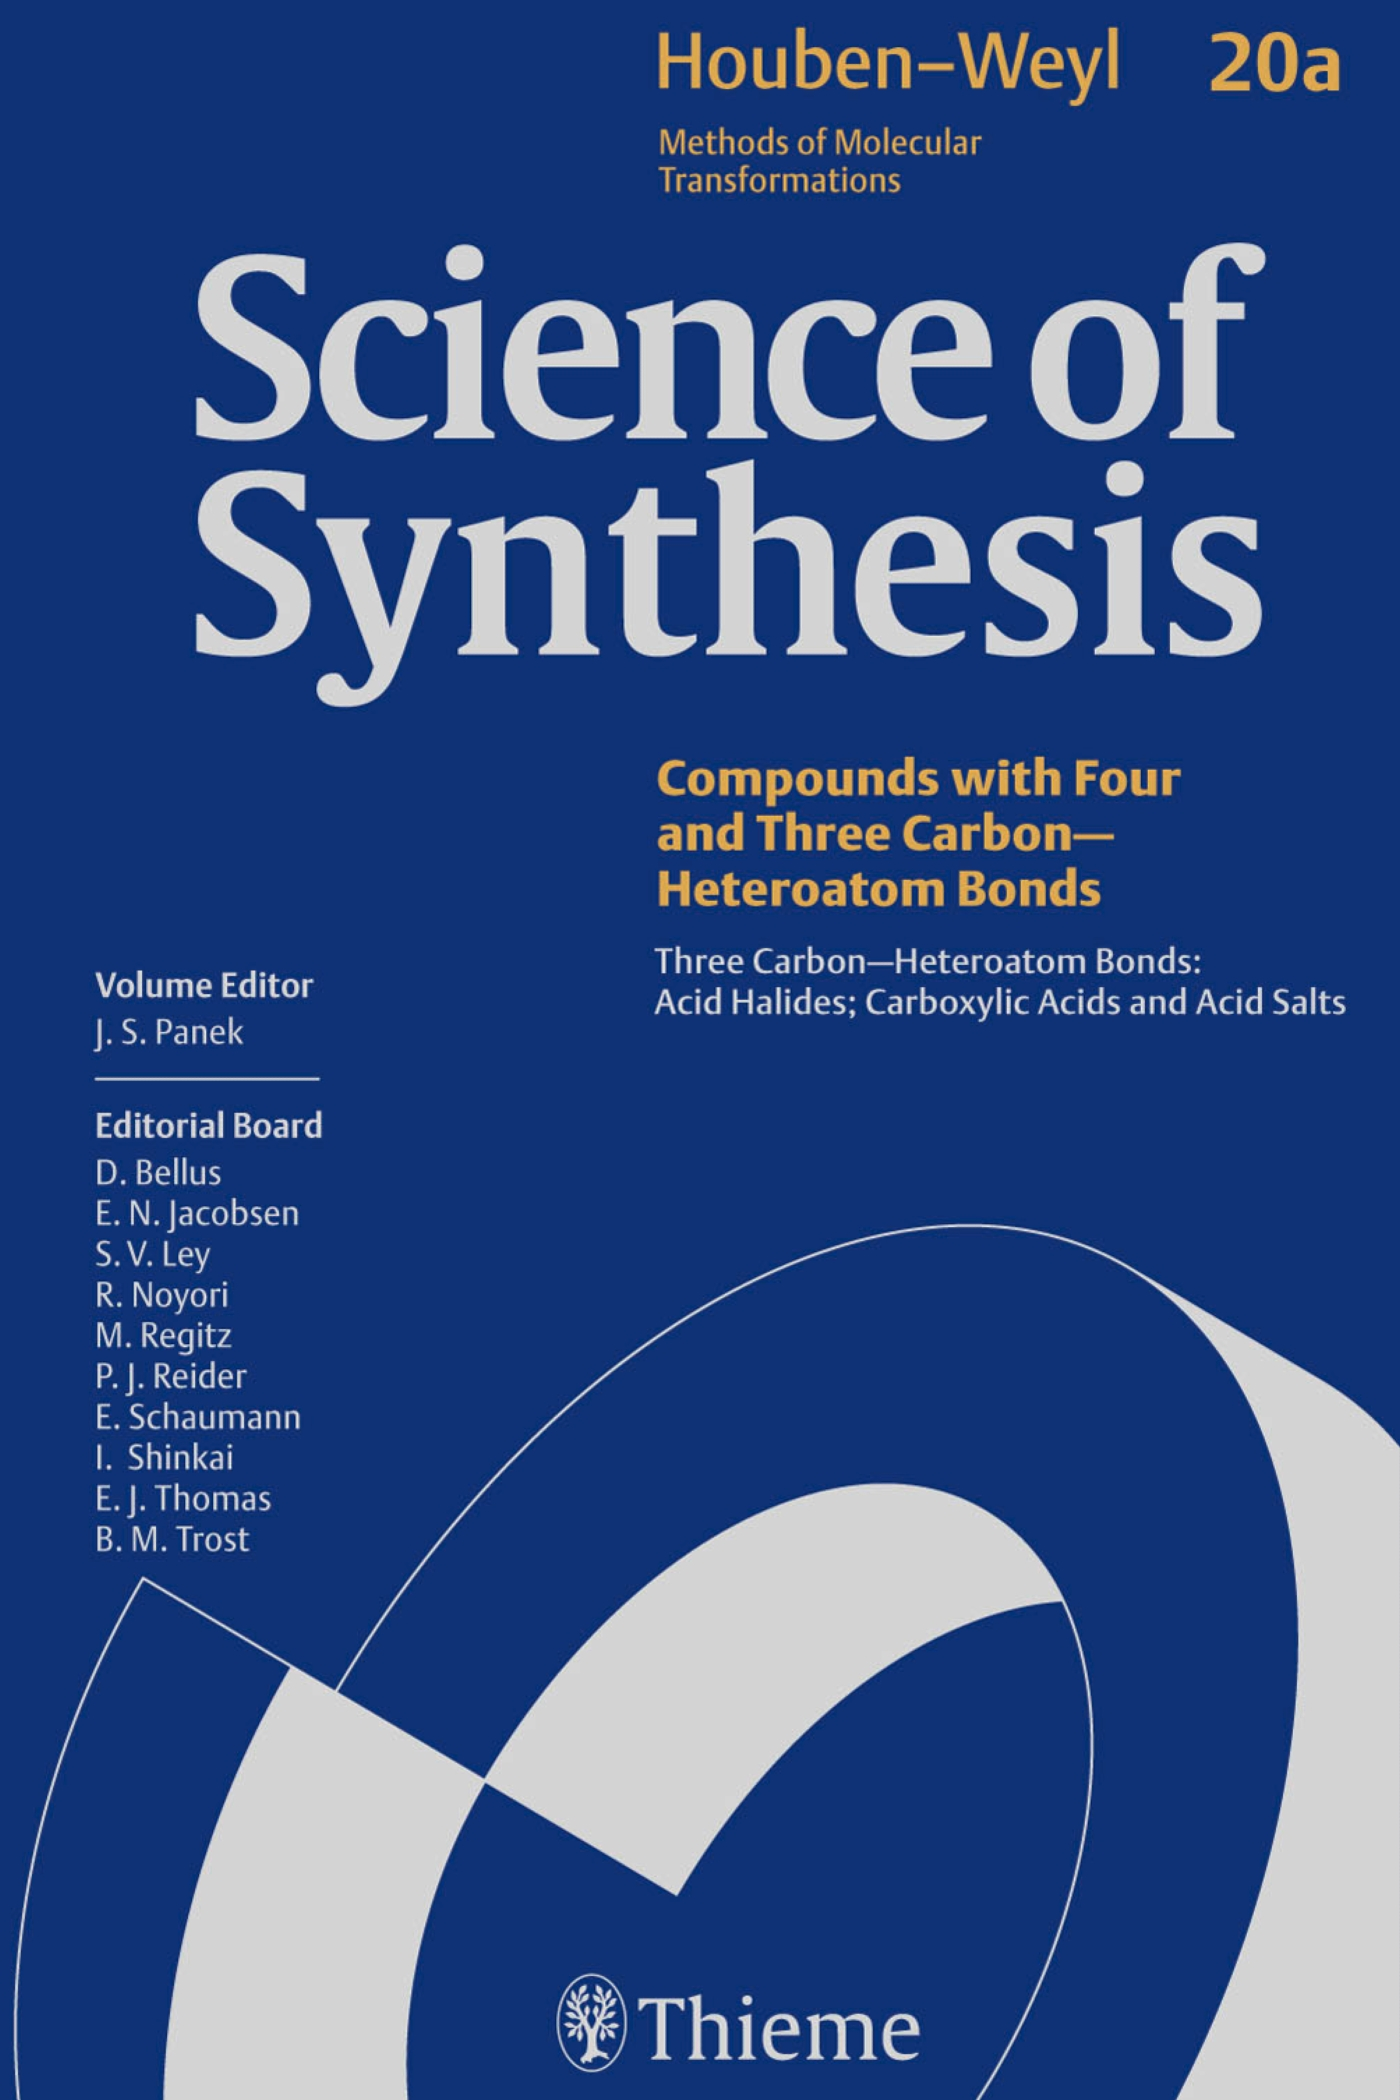 Science of Synthesis: Houben-Weyl Methods of Molecular Transformations  Vol. 20a